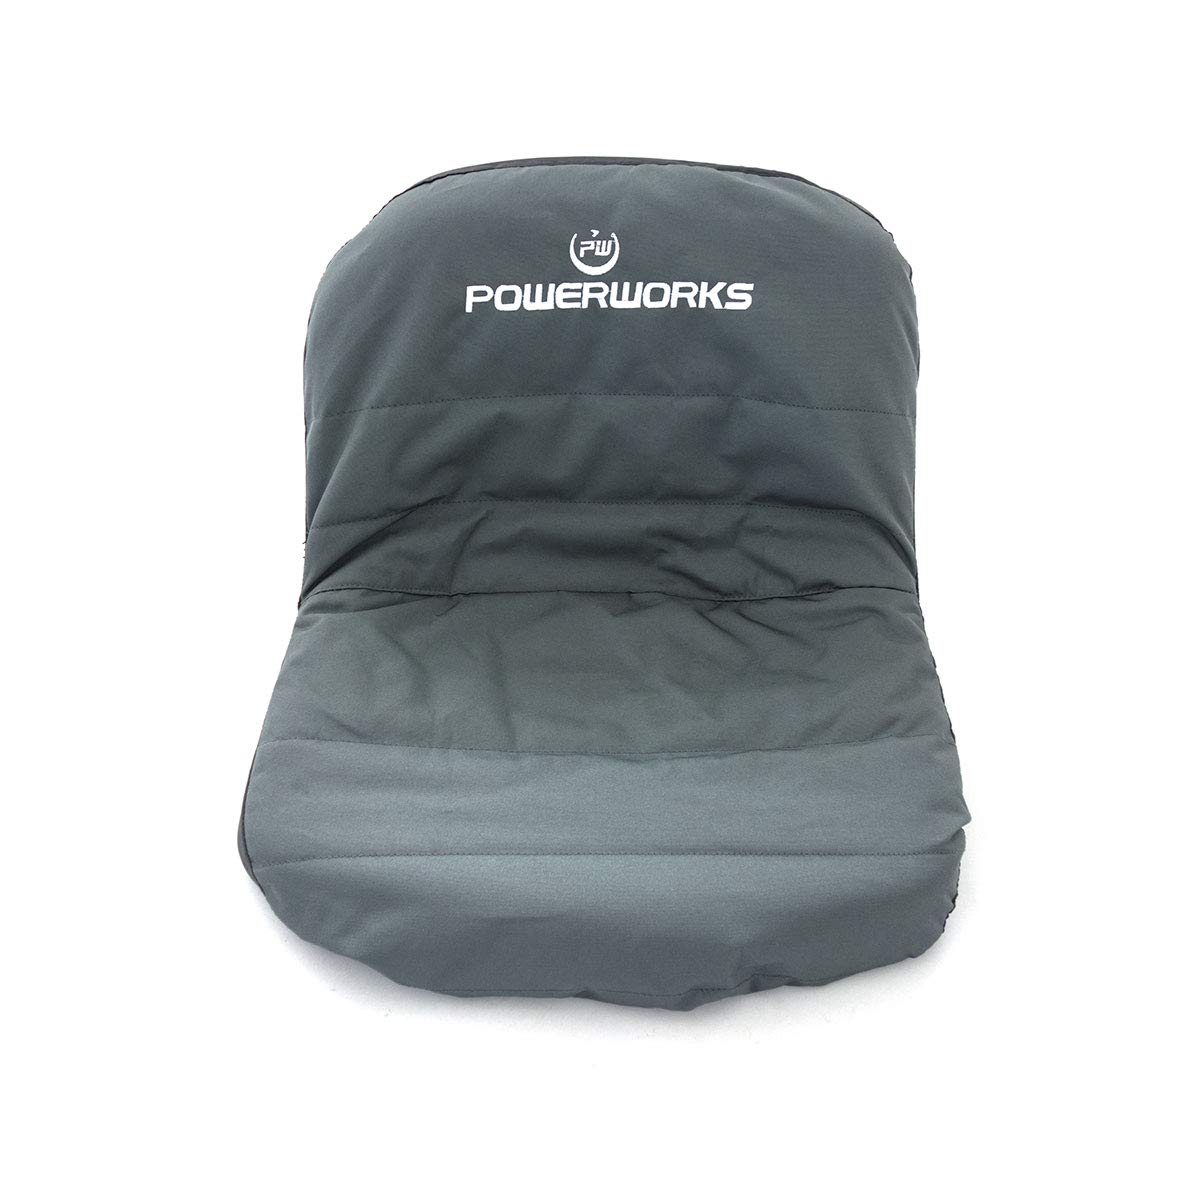 POWERWORKS Deluxe Riding Lawn Mower Seat Cover, Medium